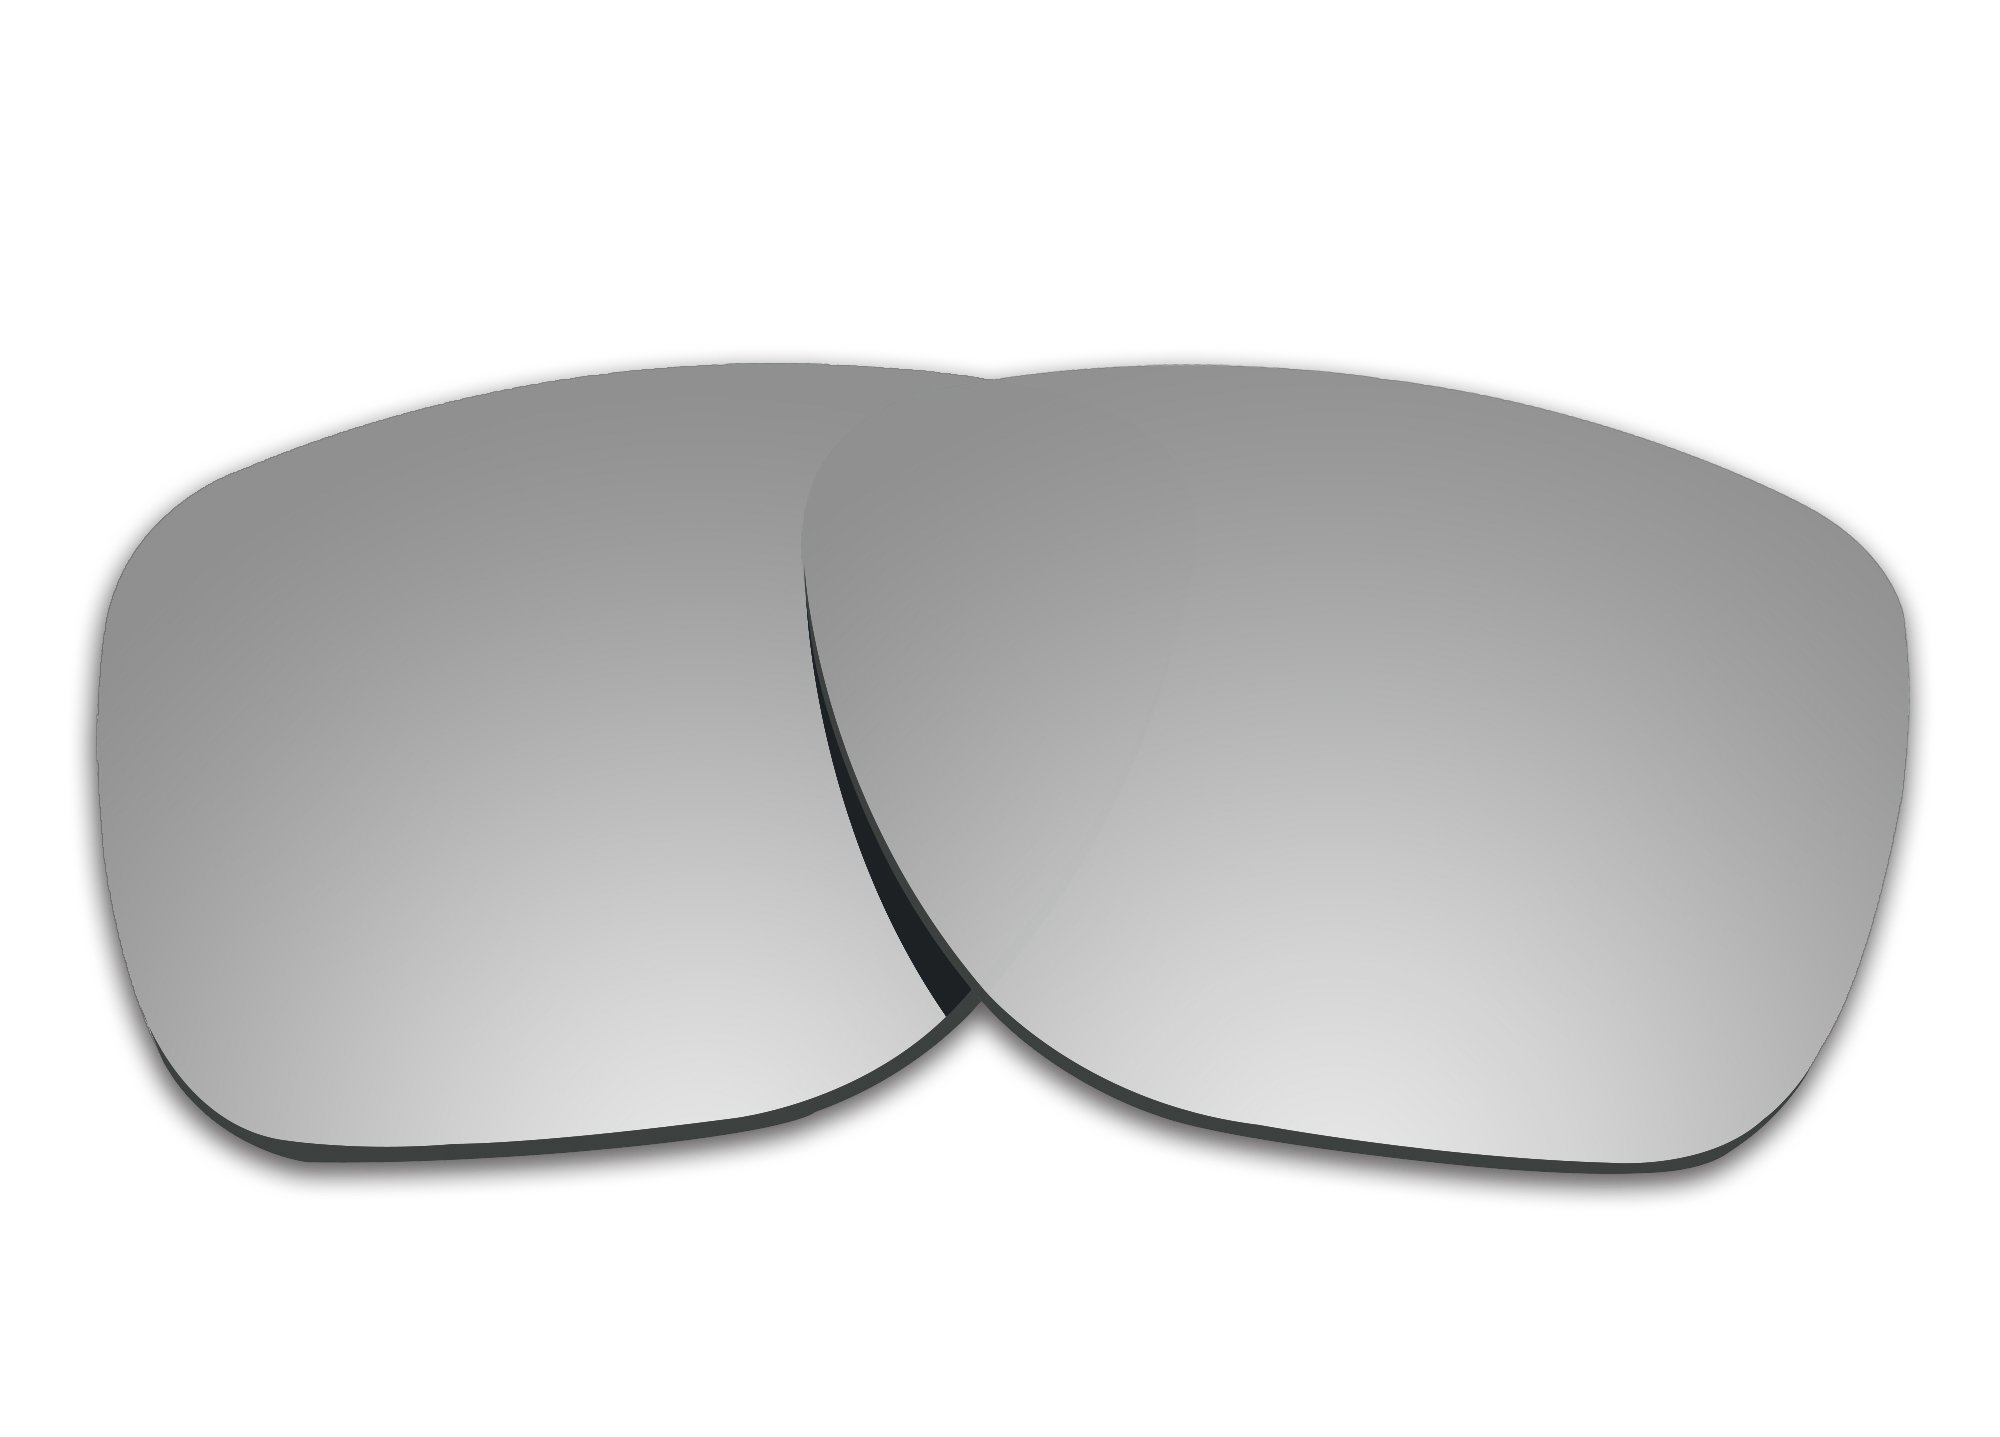 COLOR STAY LENSES 2.0mm Thickness Polarized Replacement Lenses for Oakley Crossrange XL OO9360 Titanium Mirror Coatings